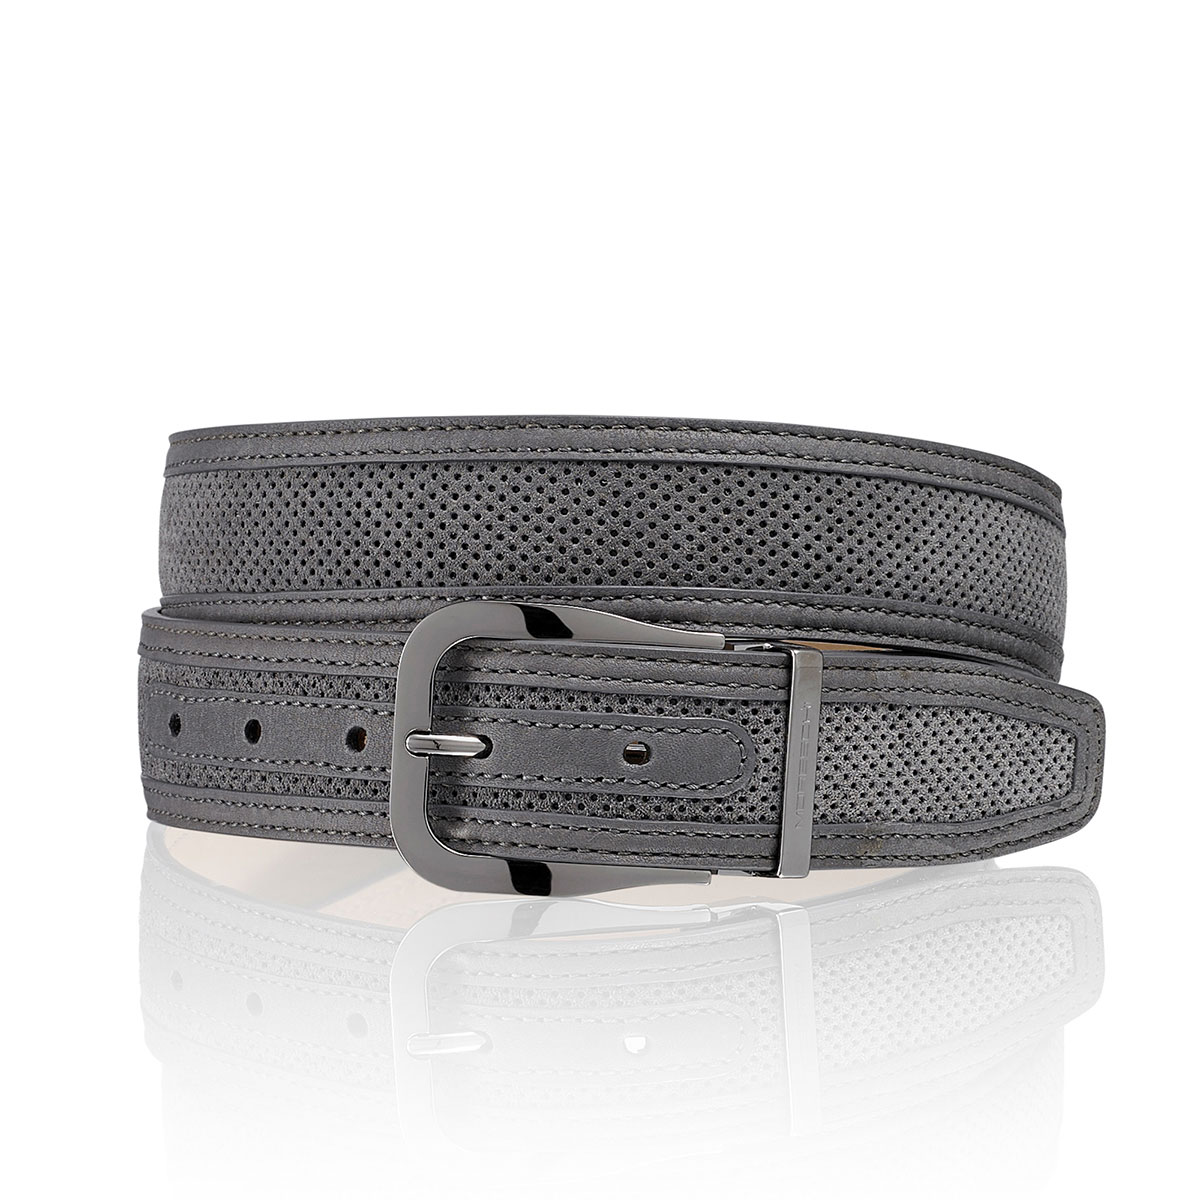 Russell And Bromley PORTOFINO Perforated Belt